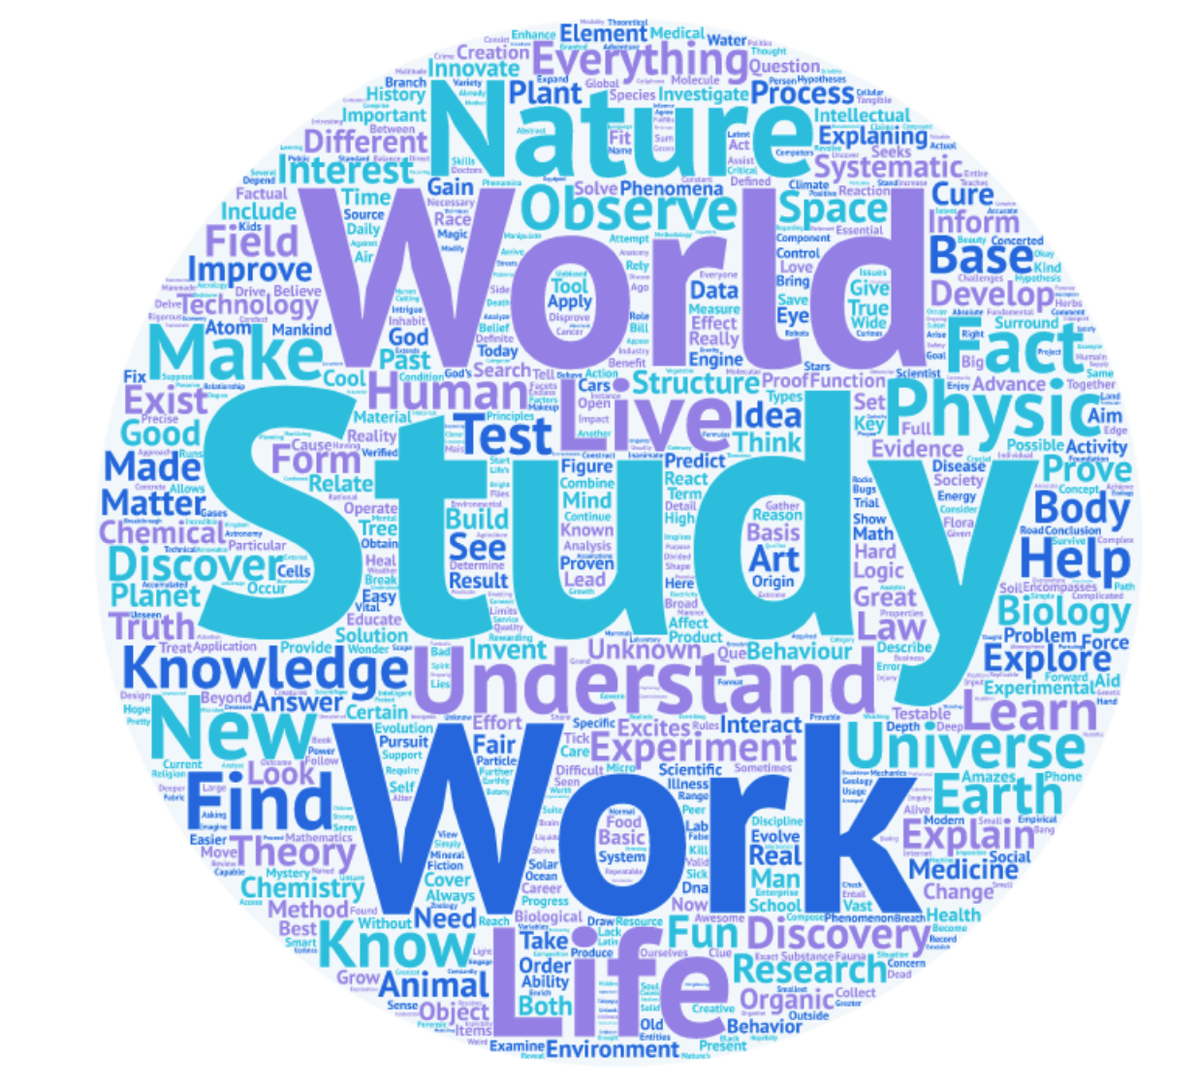 Word cloud based on question